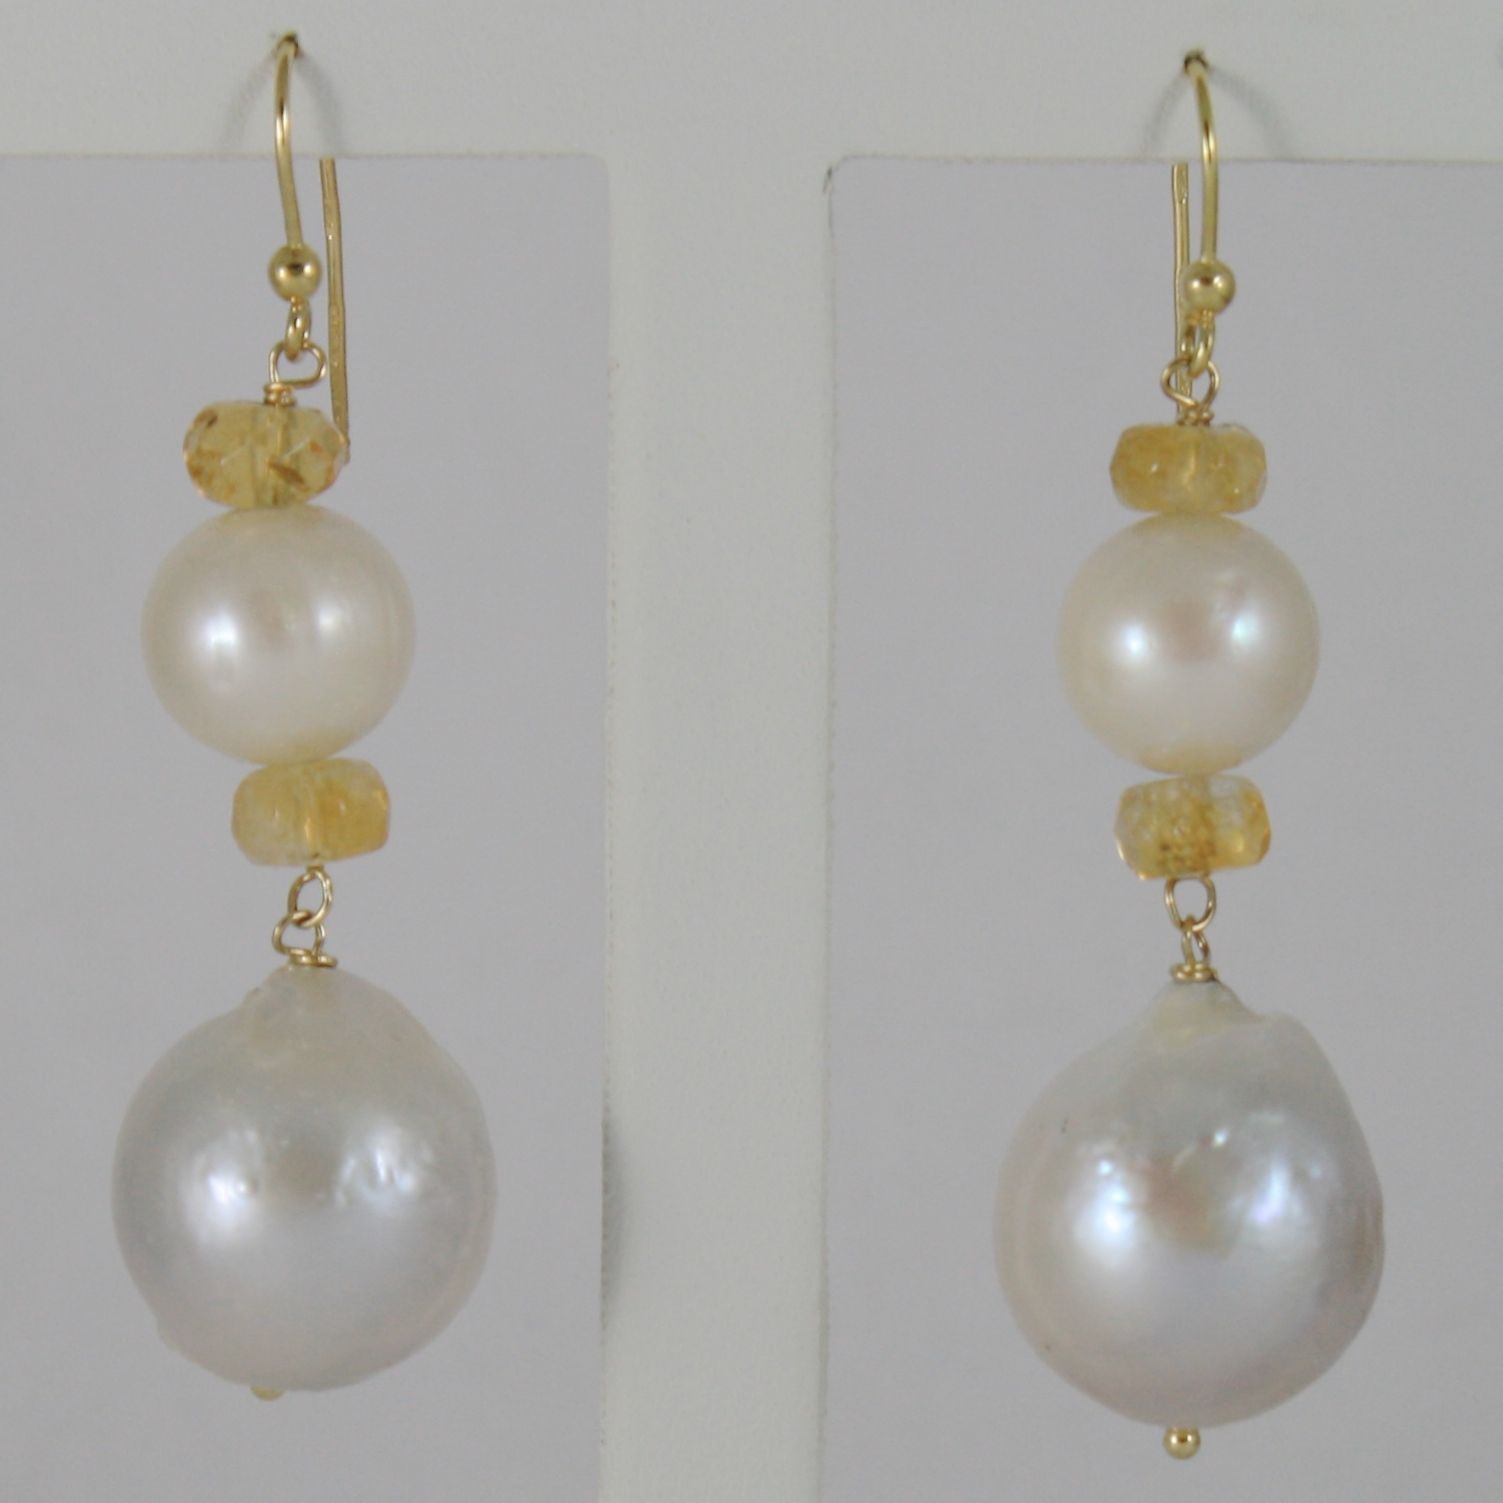 18K YELLOW GOLD PENDANT EARRINGS WITH BIG 13 MM WHITE FW PEARLS AND ARAGONITE